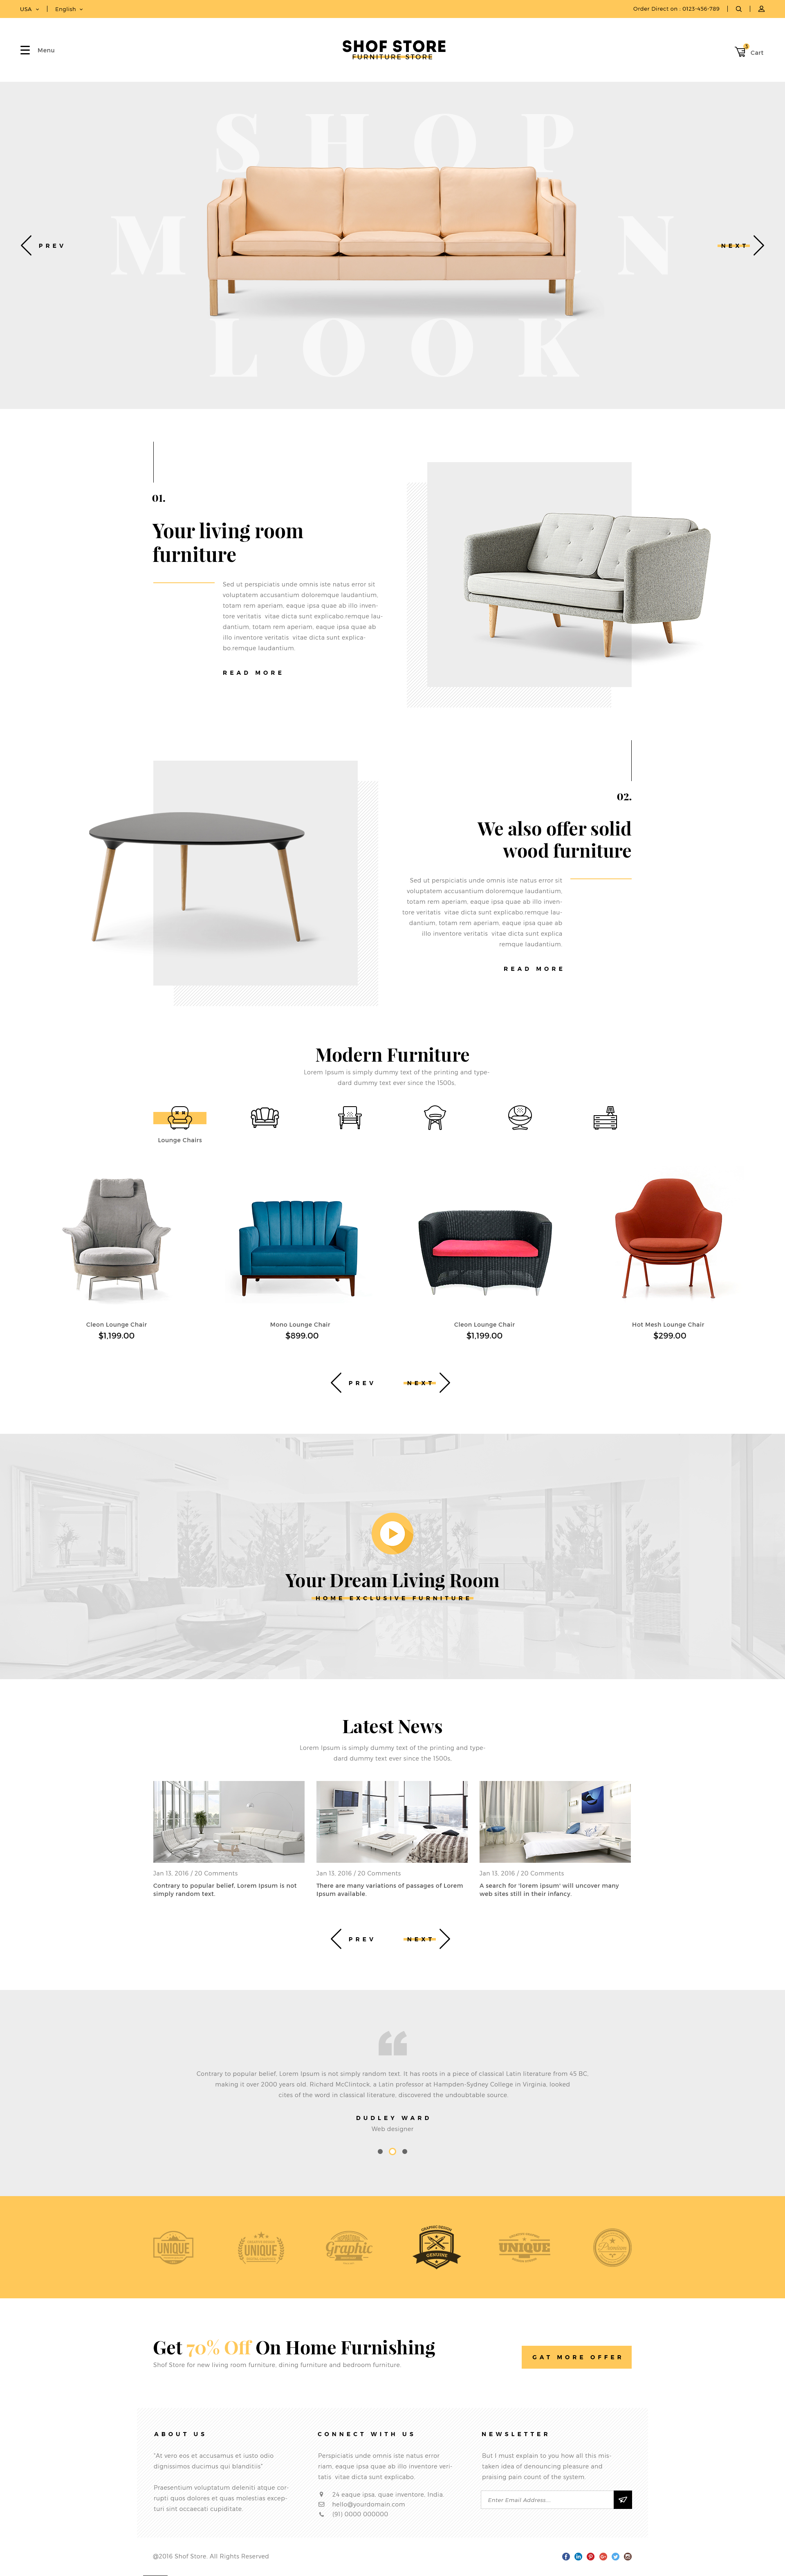 Shofstore Stylish Ecommerce Psd Template For Furniture Store By Lozox